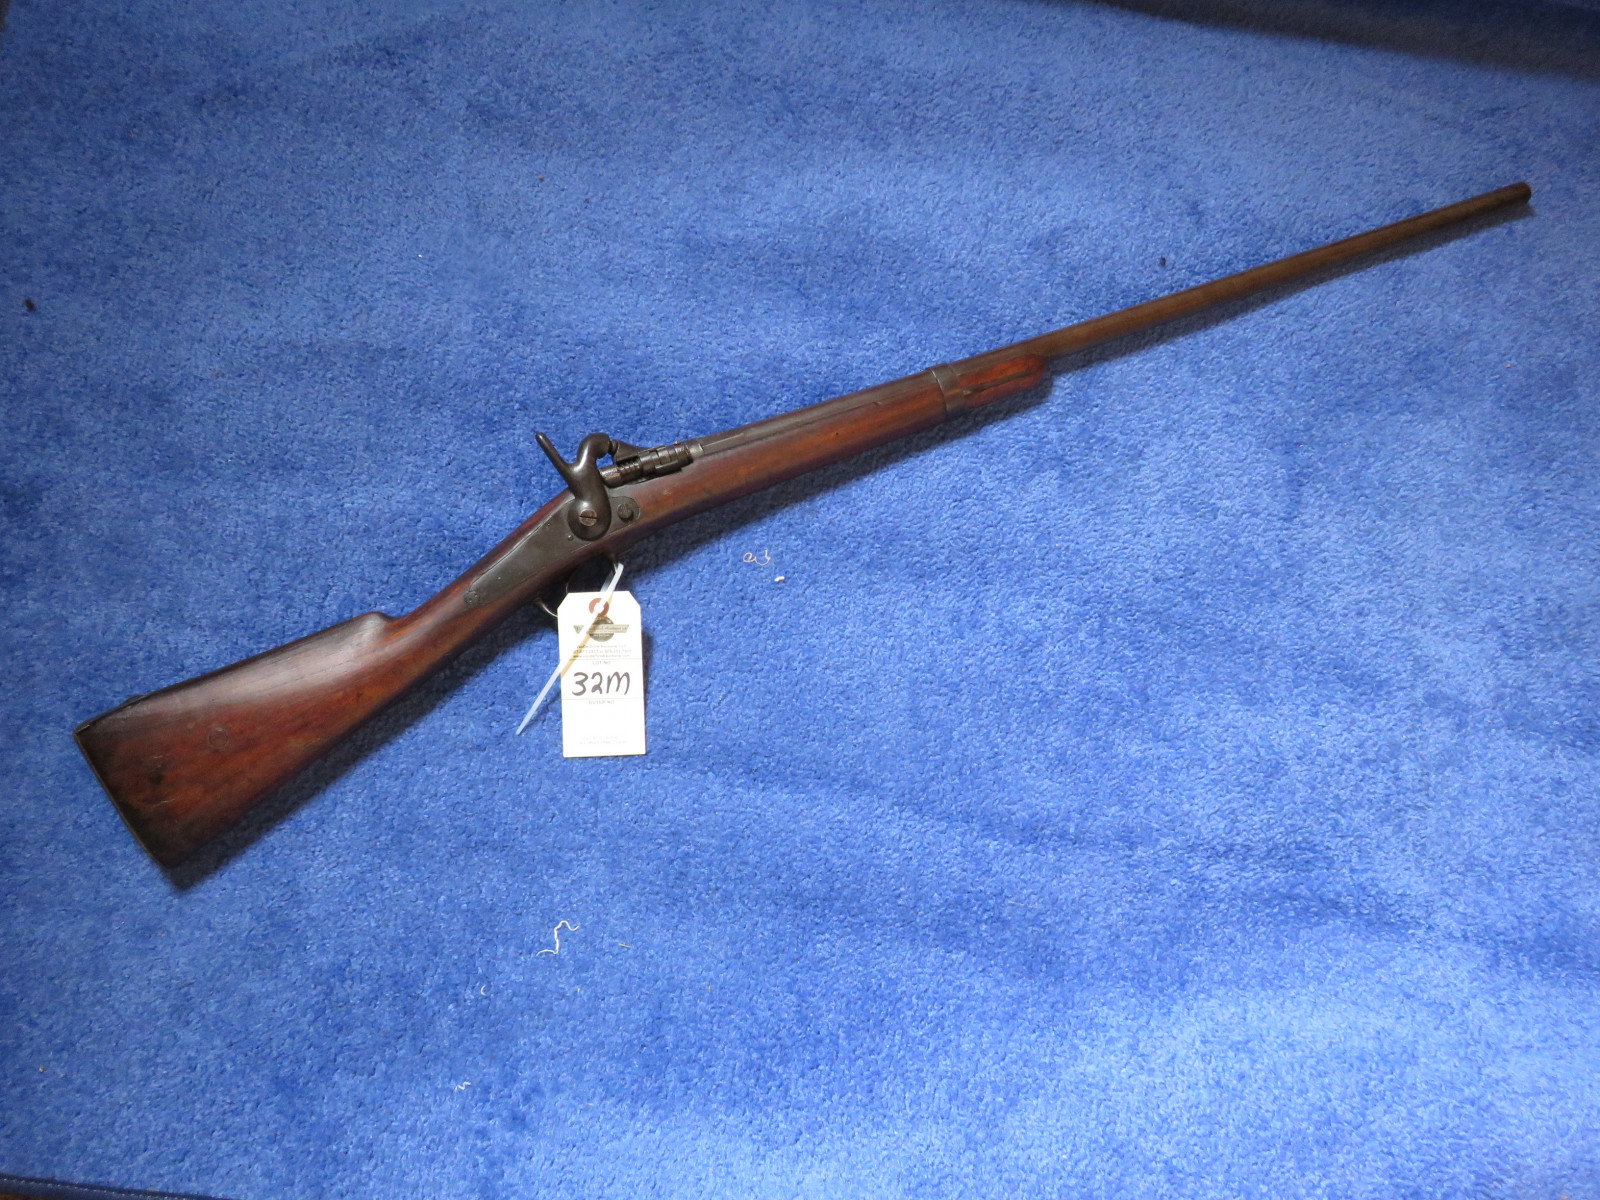 Flint lock 12 Gauge Shotgun - Image 1